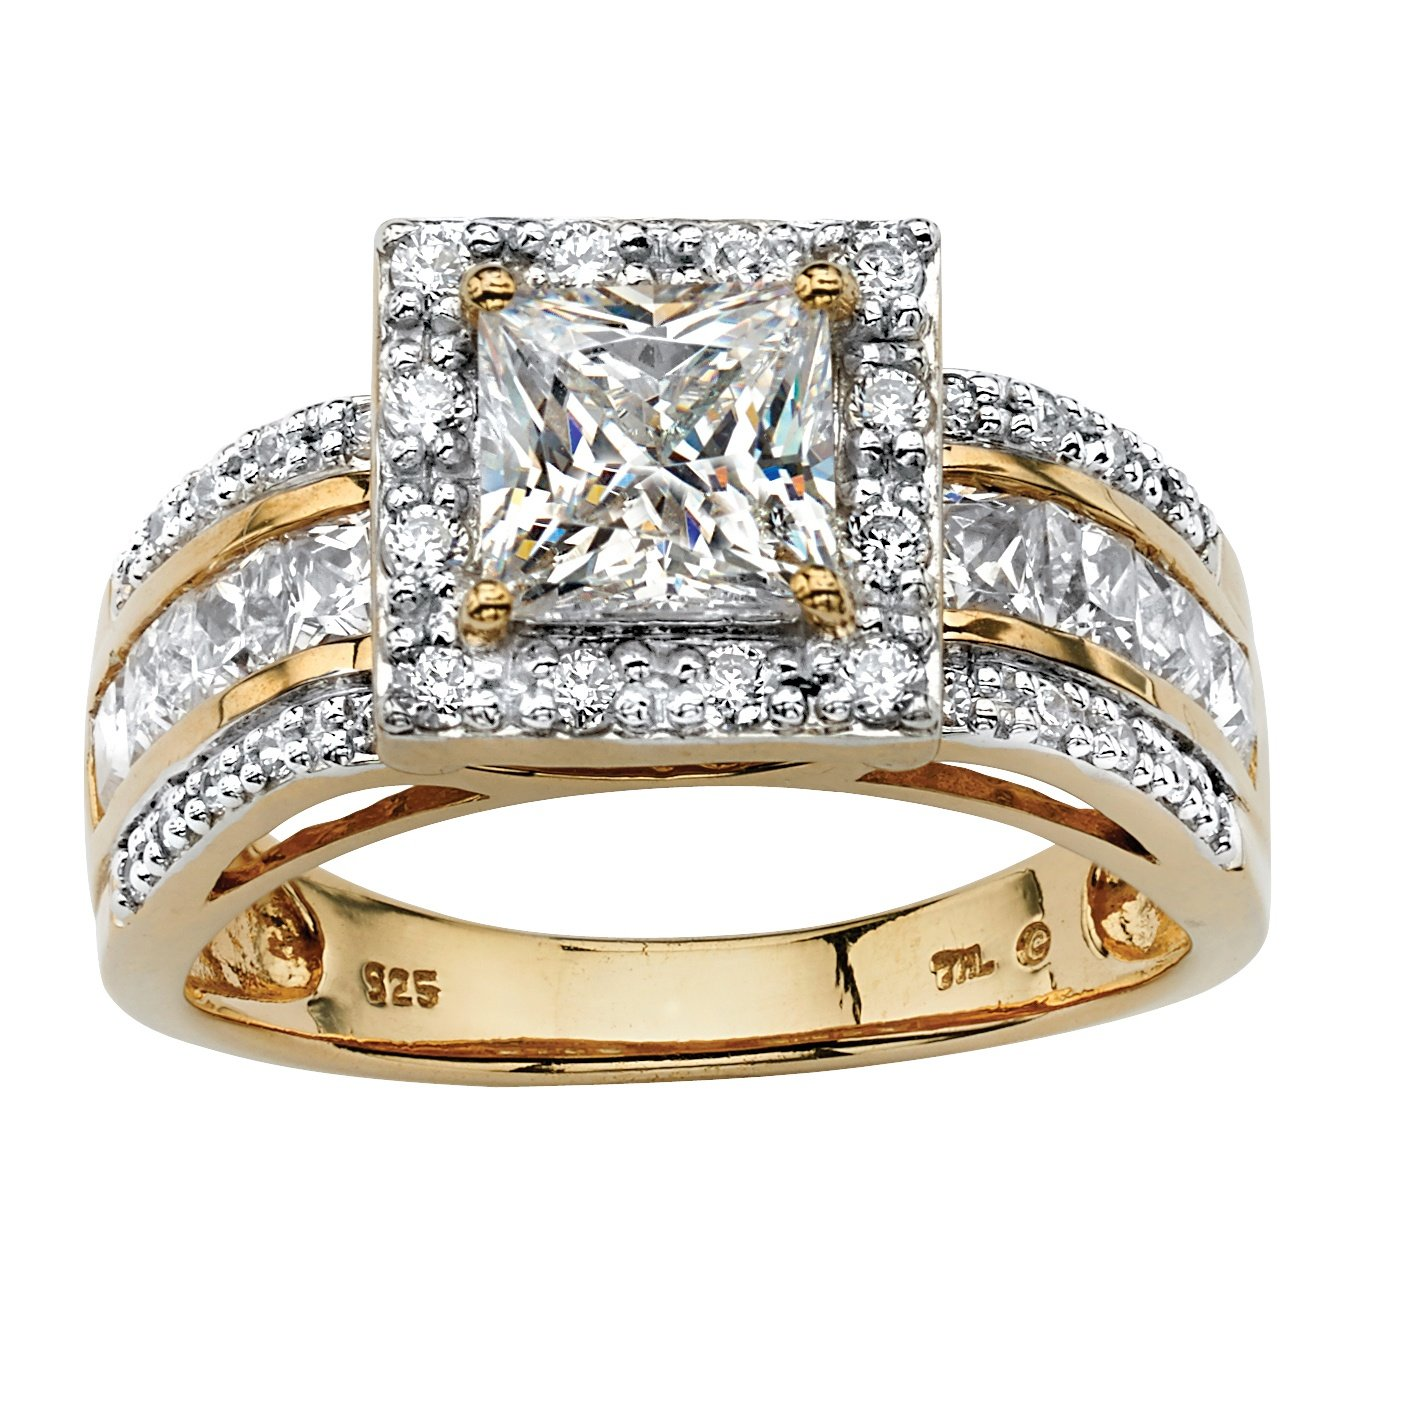 18K Yellow Gold over Sterling Silver Princess Cut Cubic Zirconia Halo Triple Row Engagement Ring Size 8 by Palm Beach Jewelry